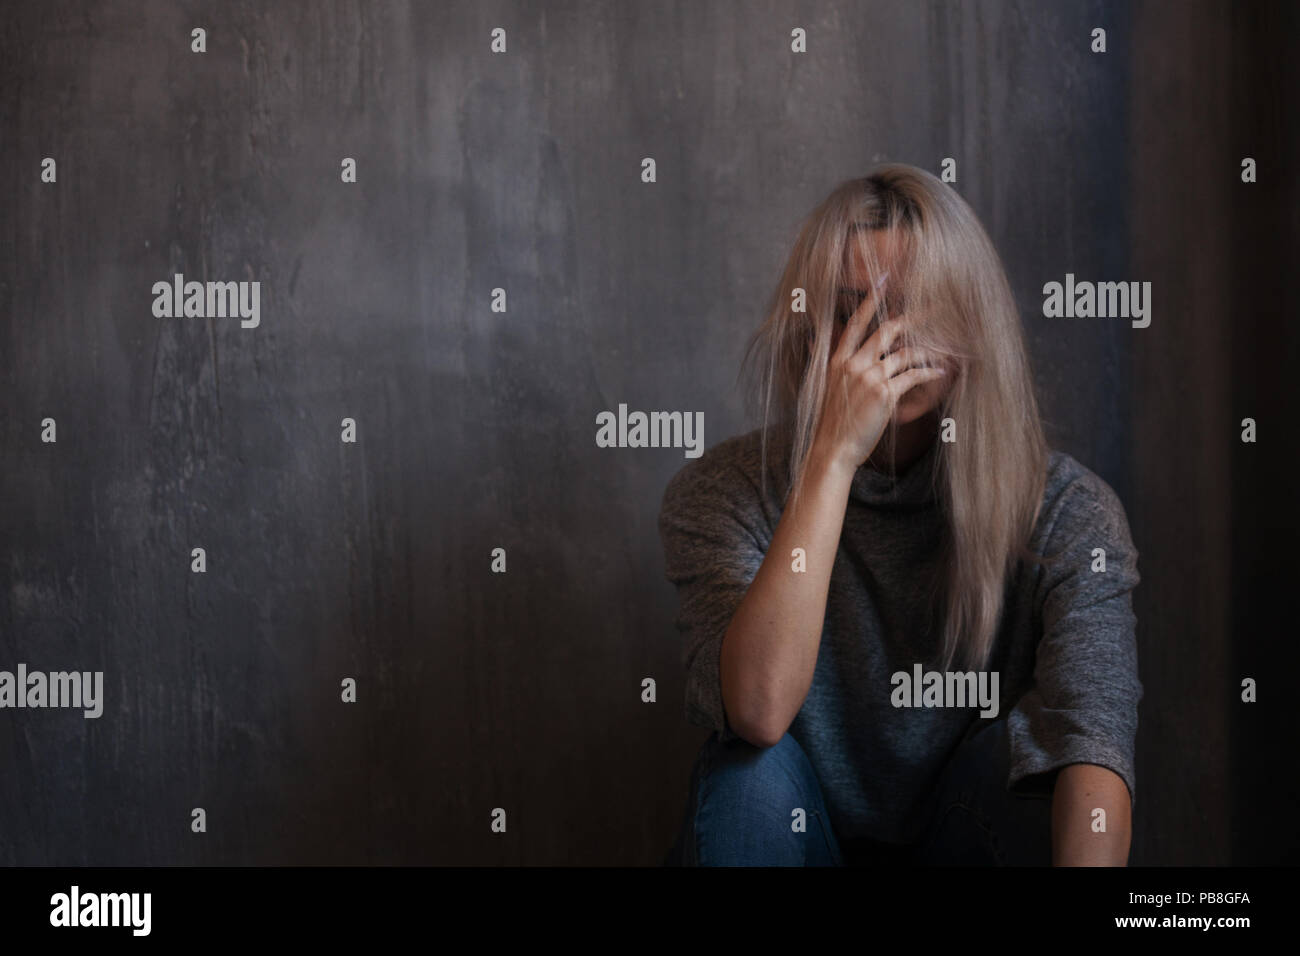 chronic fatigue syndrome. Young woman, palm on the face. Depressed girl sitting on the floor, gray background - Stock Image